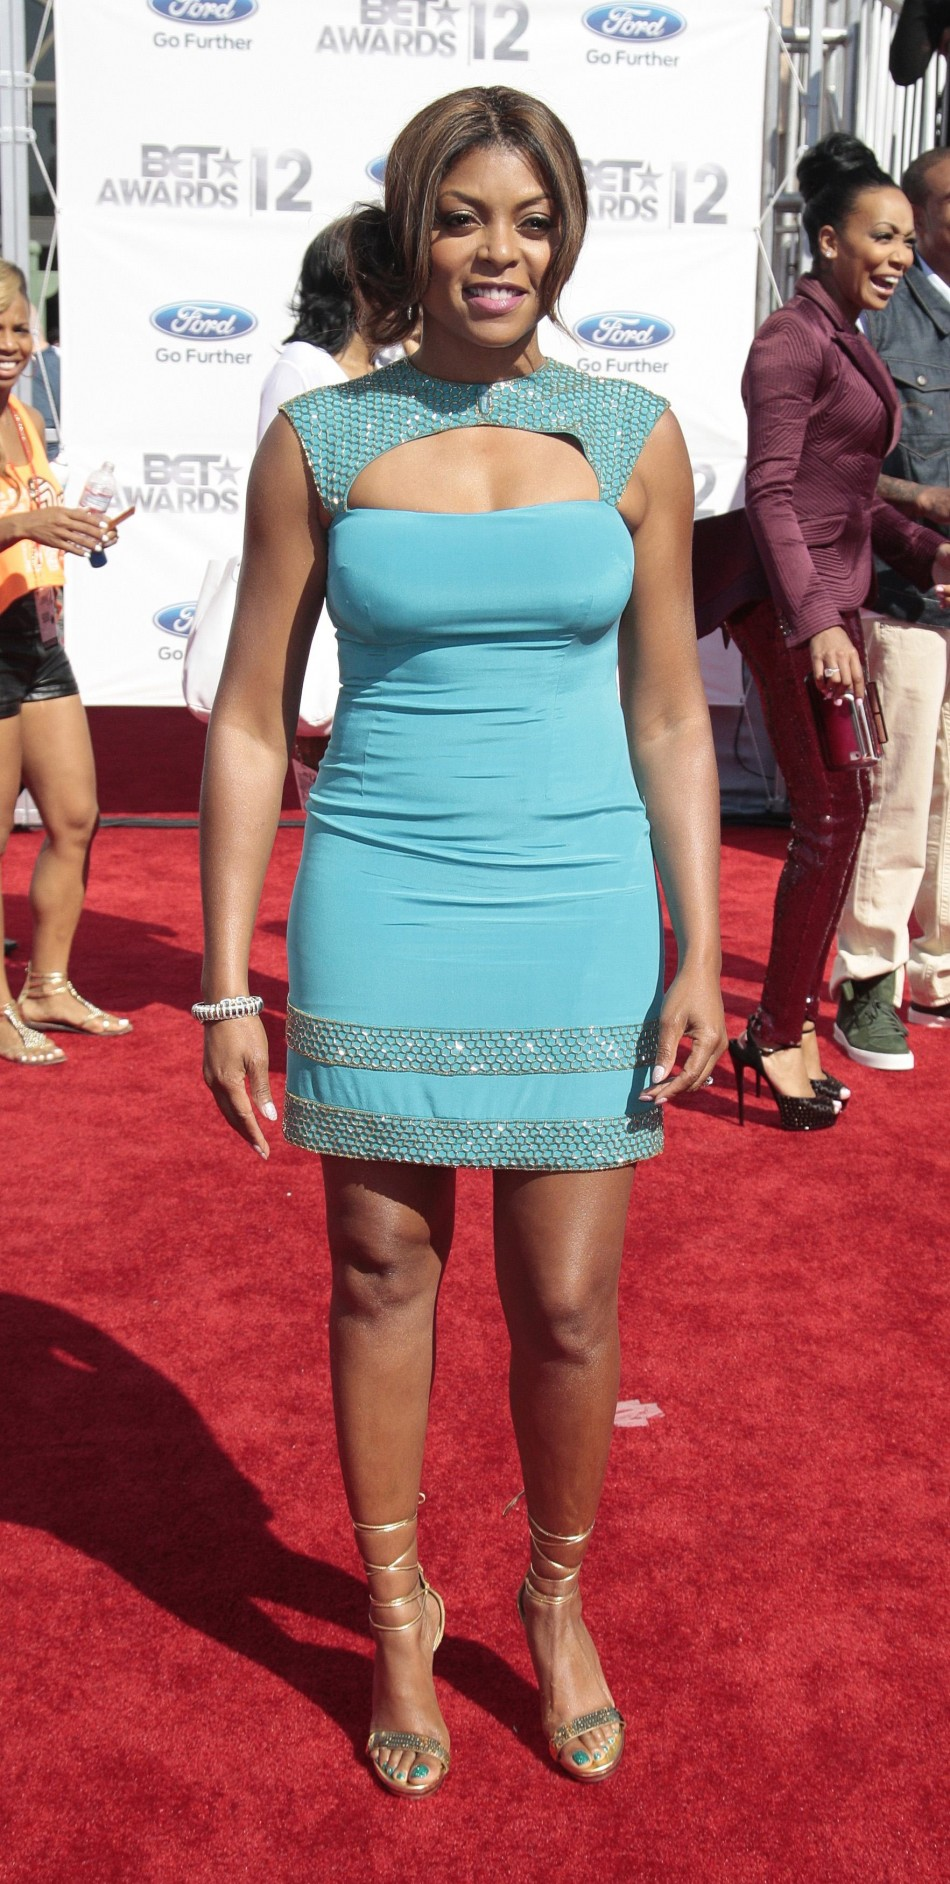 Taraji P. Henson poses at the 2012 BET Awards in Los Angeles